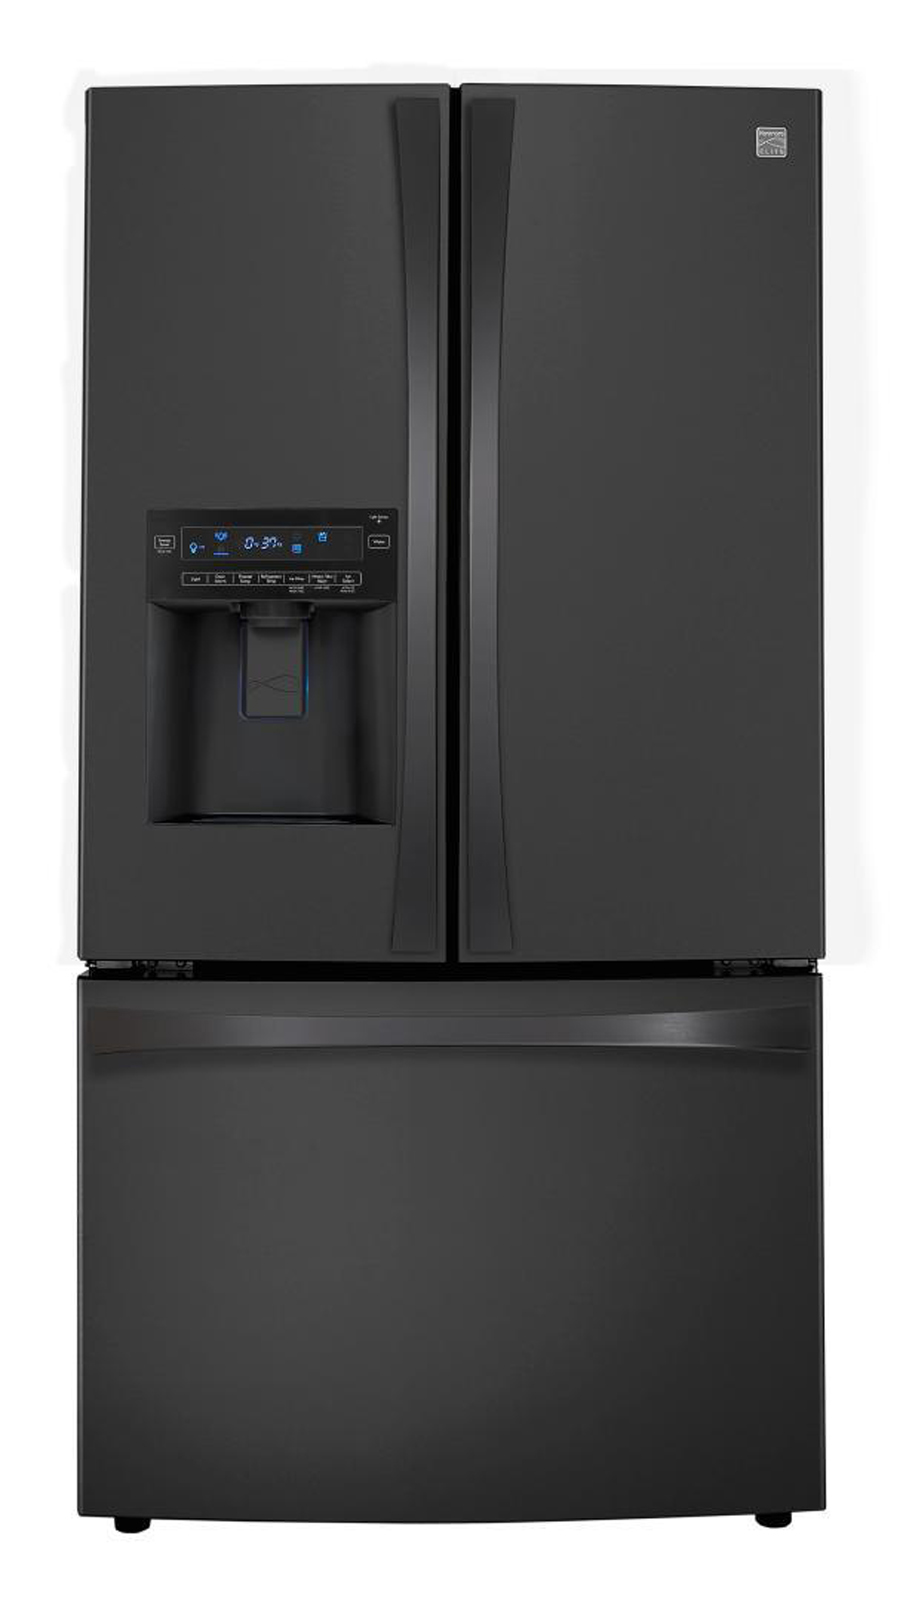 Kenmore Elite 31 cu. ft. Grab-N-Go French Door  Bottom-Freezer Refrigerator - Black